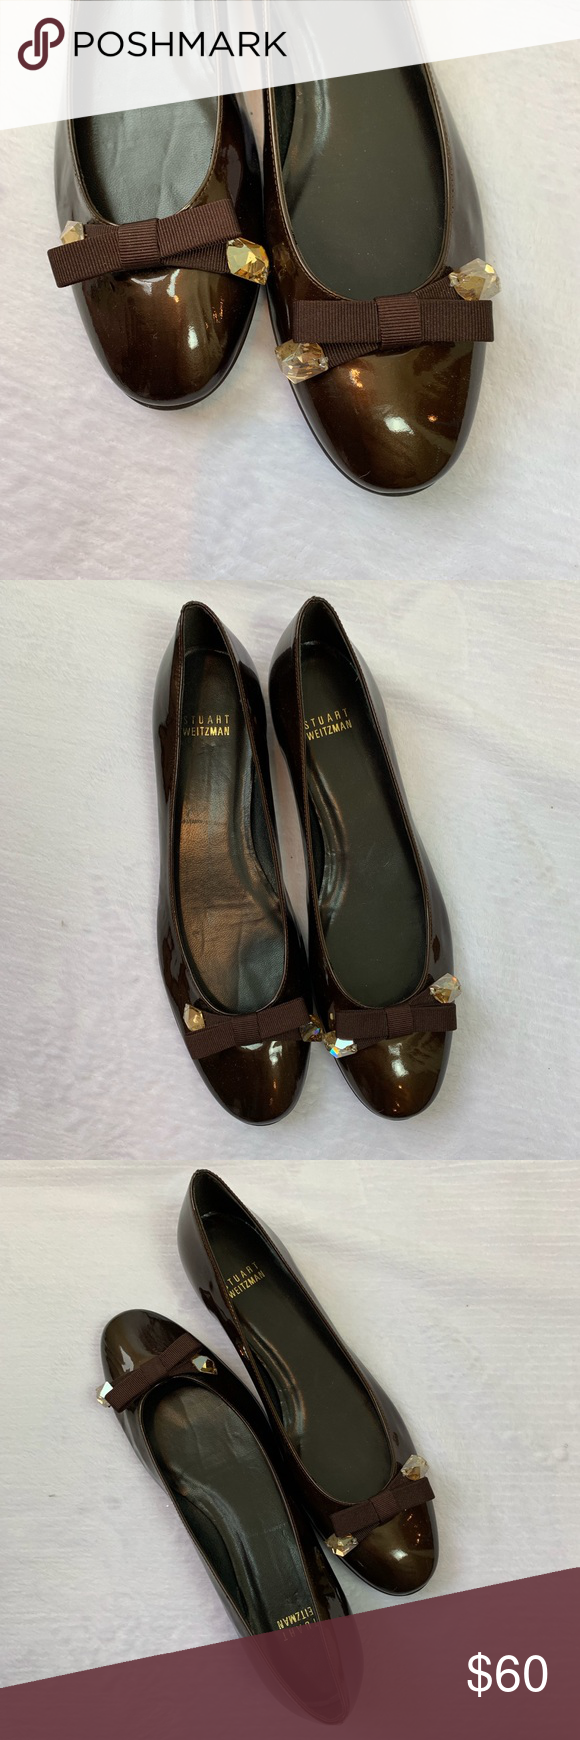 NEW STUWART WEITZMEN BALLET FLATS Never worn brown patent leather made in Spain …